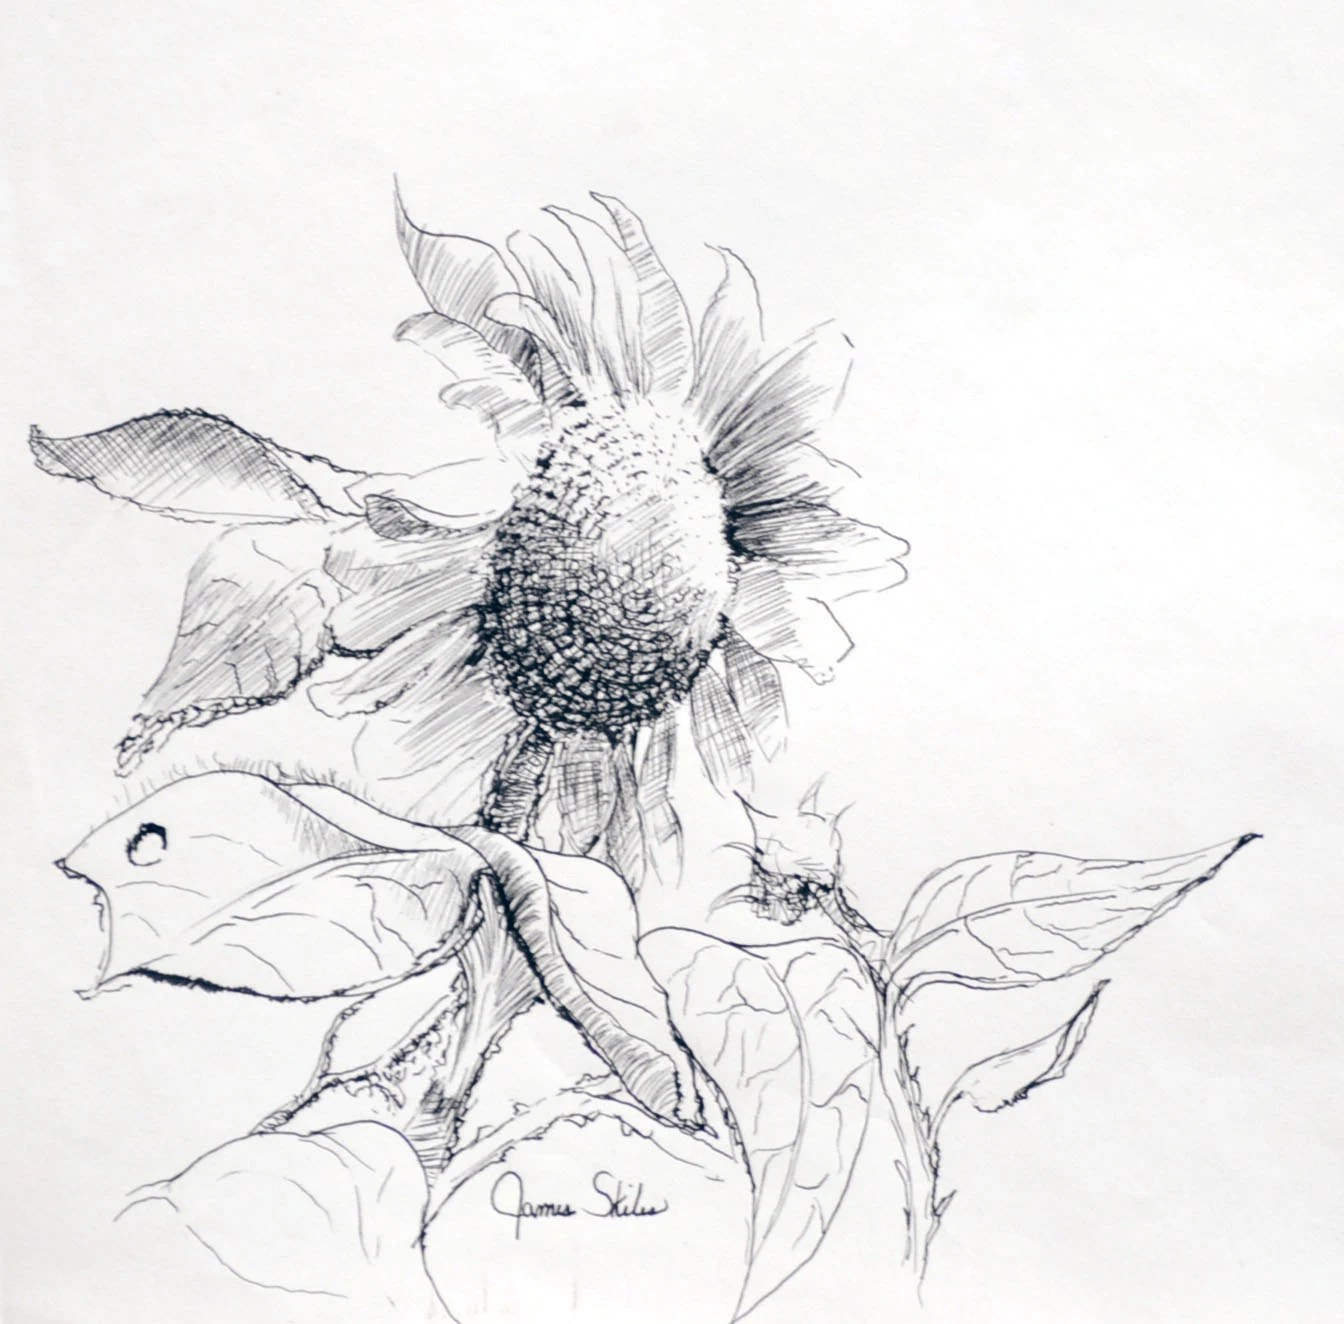 Items similar to Whimsical Sunflower, Original Pen And Ink